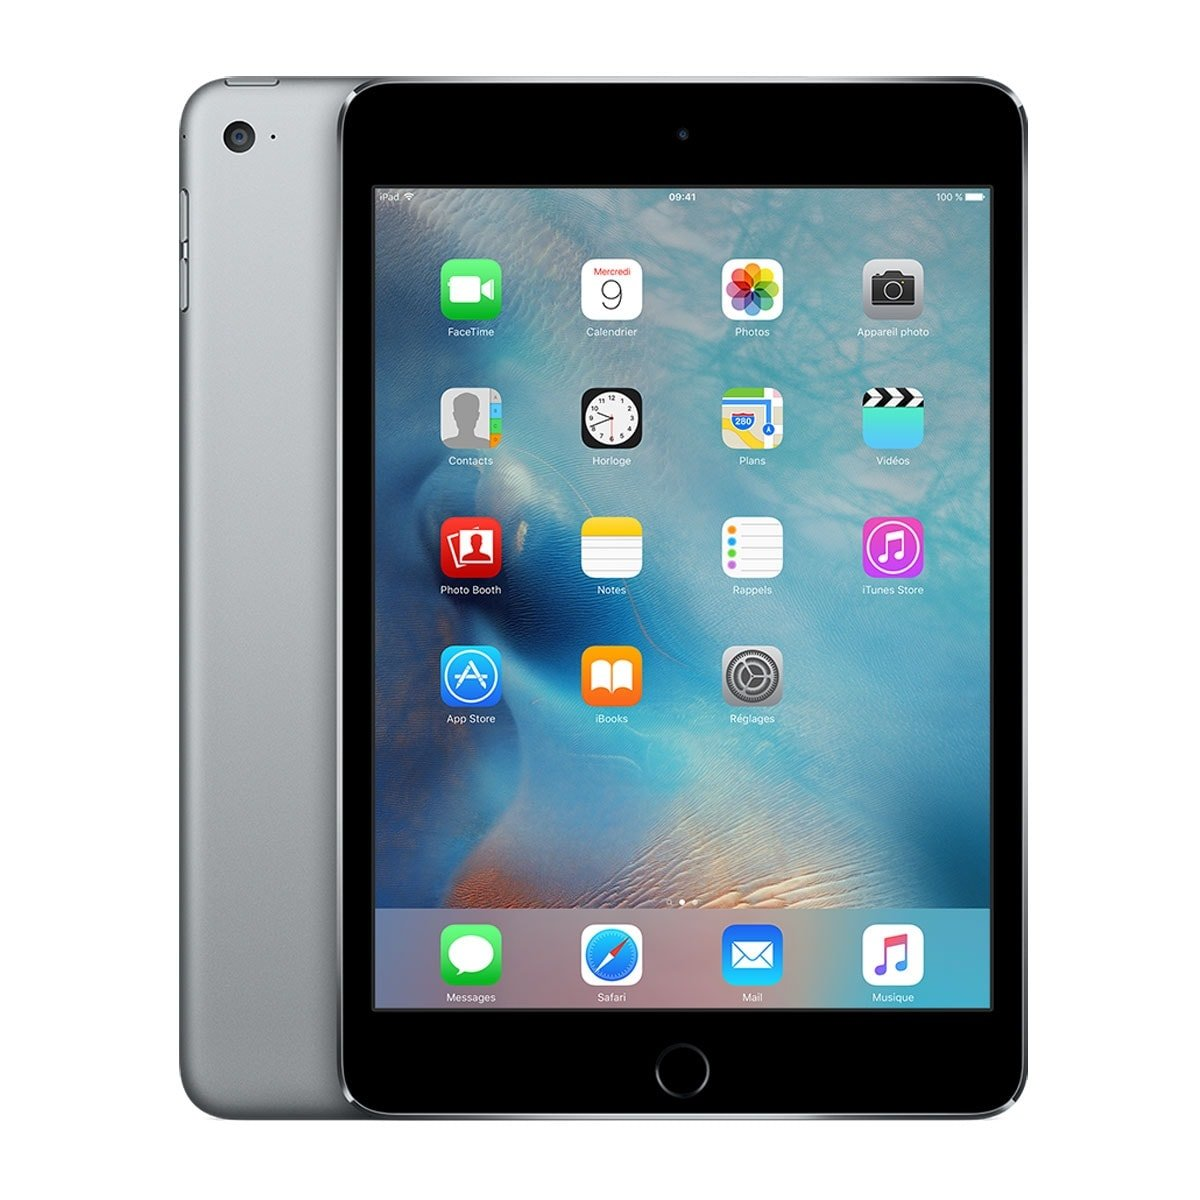 Apple iPad mini 4 Wi-Fi 16Go Gris Sidéral - Tablette tactile - 0